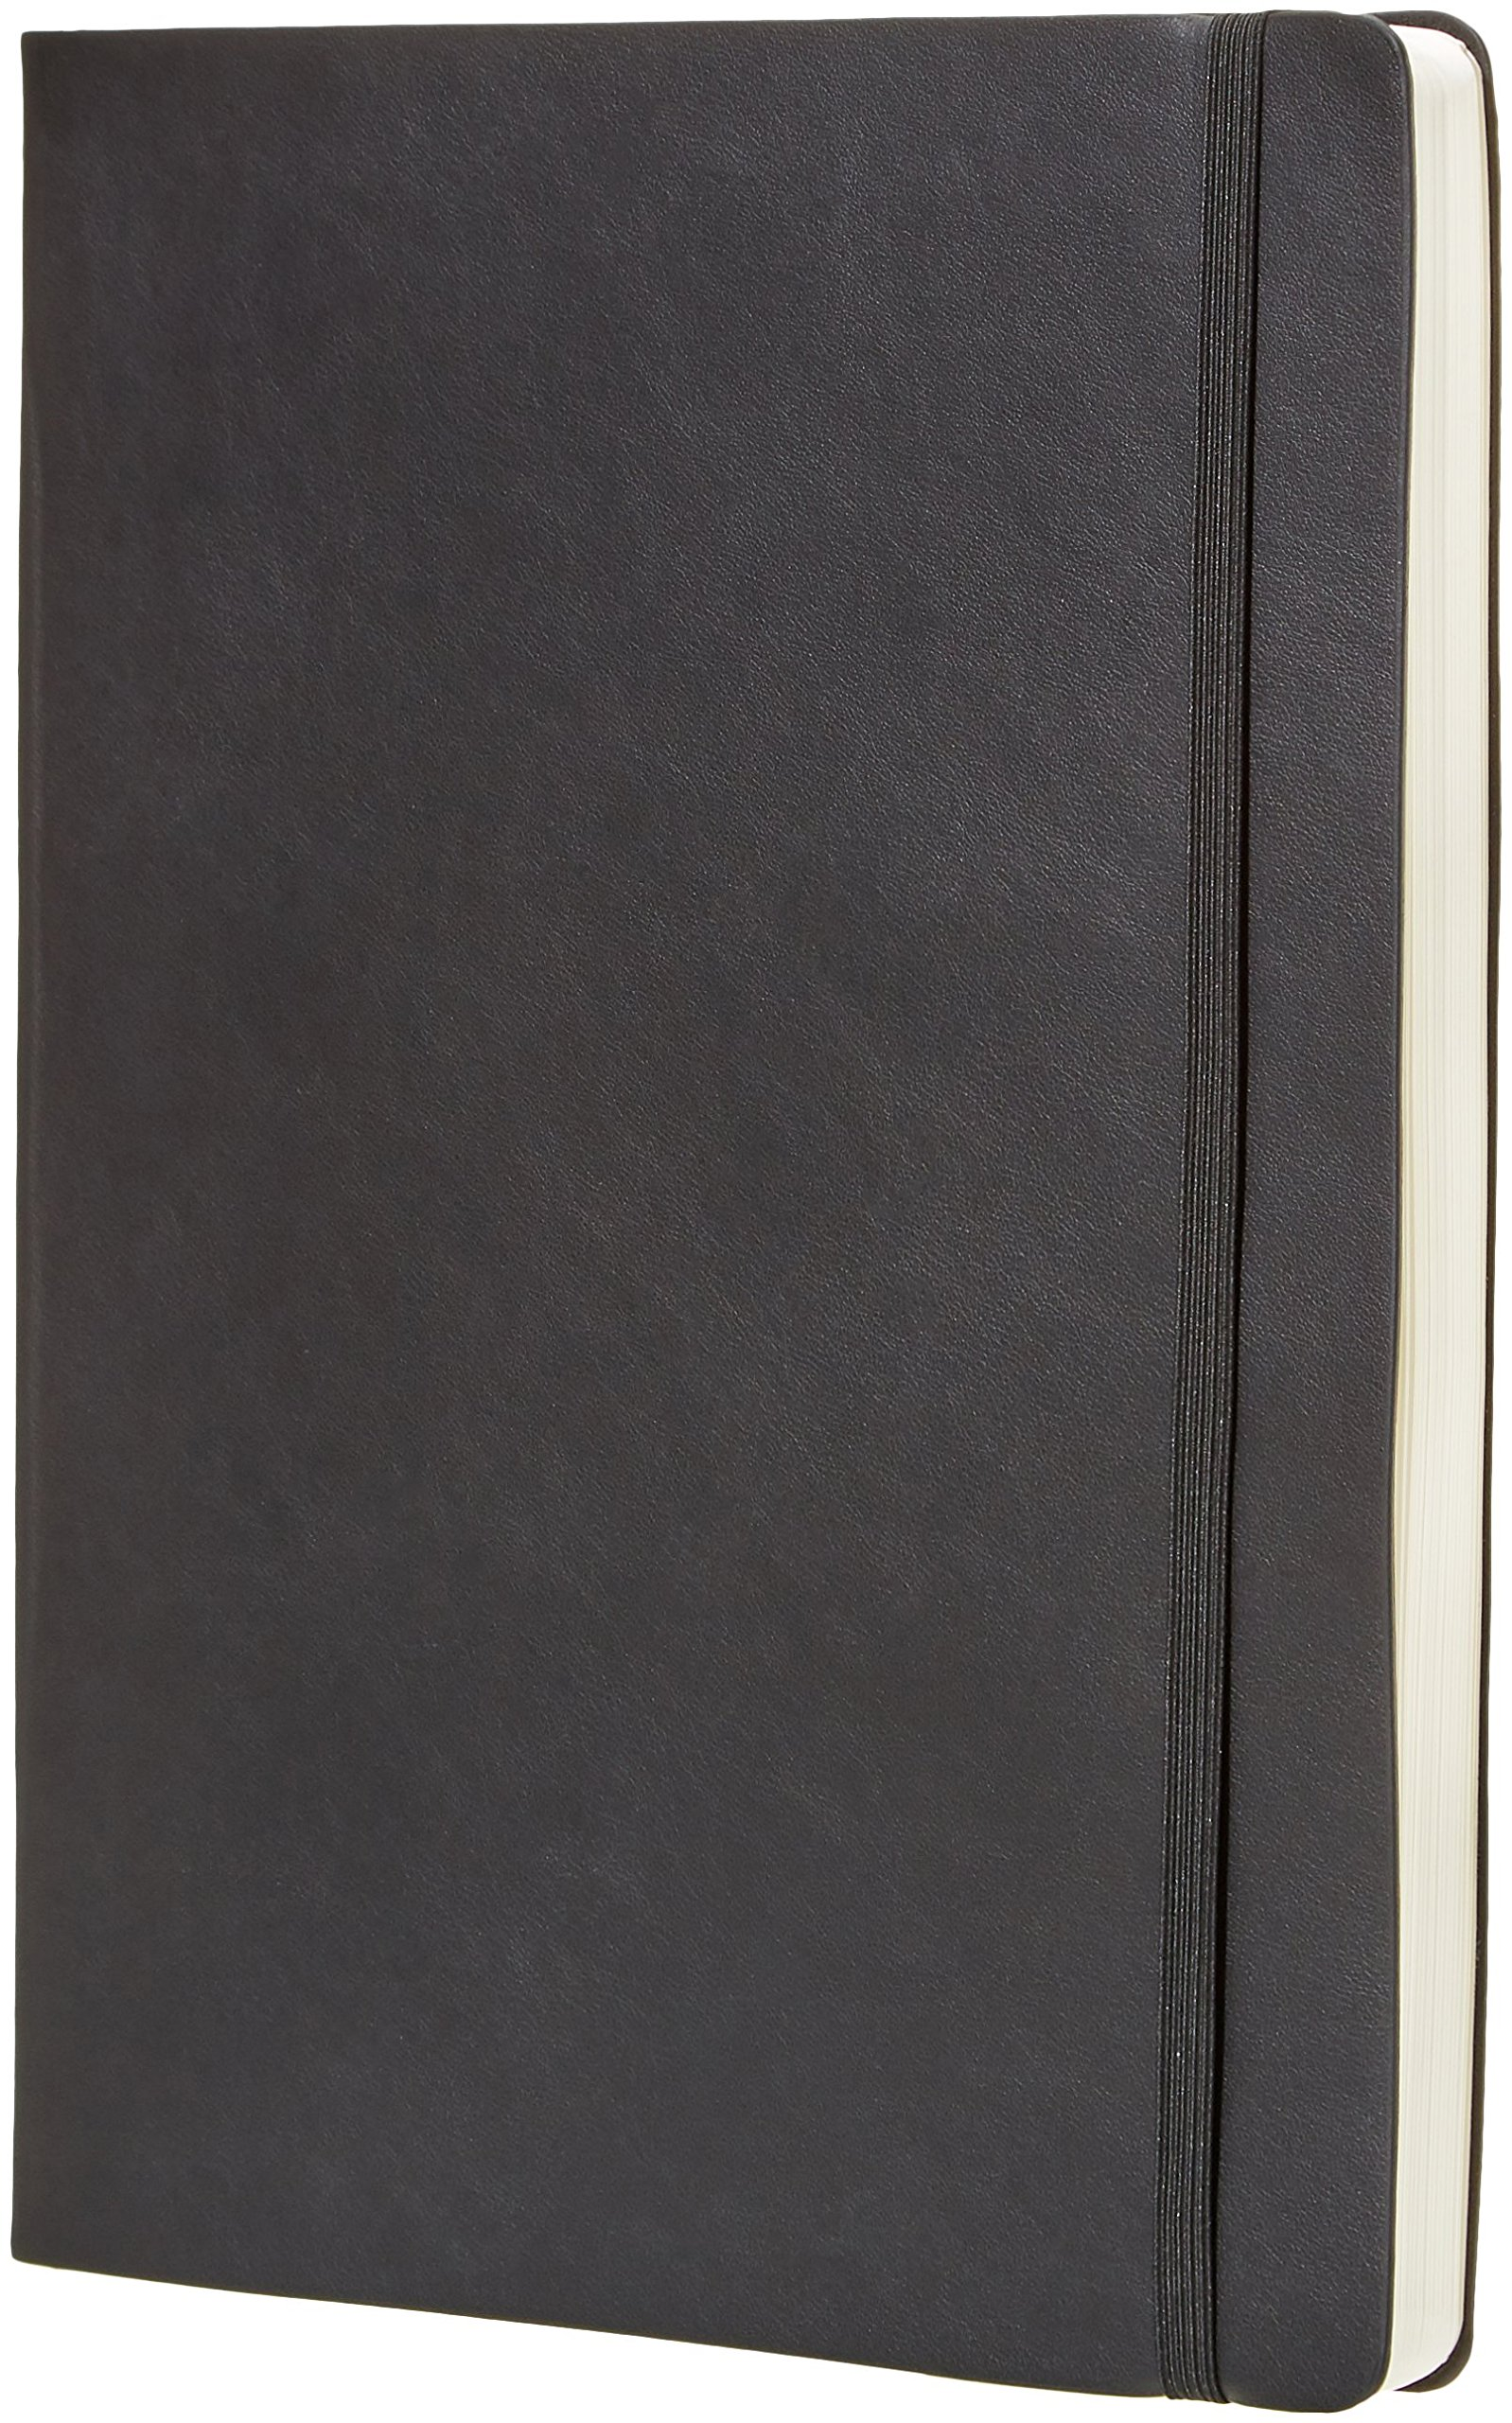 Amazon Basics Daily Planner and Journal - 8.5 Inch x 11 Inch, Soft Cover